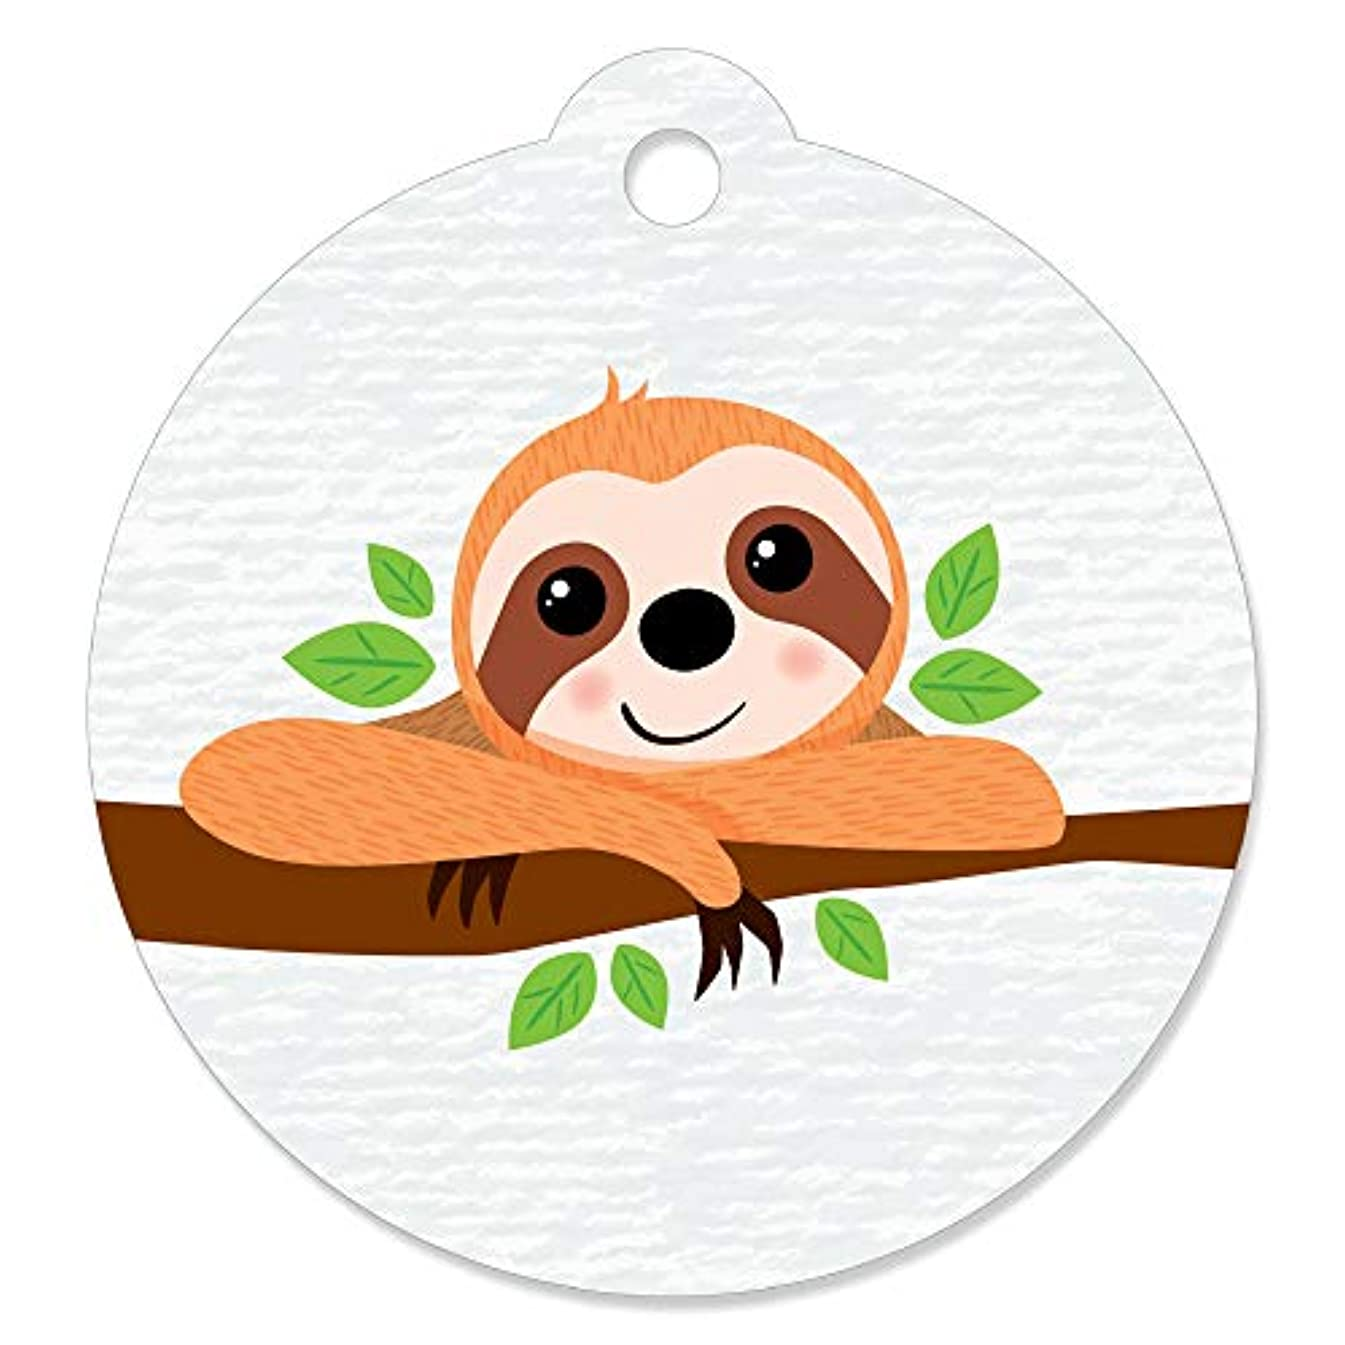 Let's Hang - Sloth - Baby Shower or Birthday Party Favor Gift Tags (Set of 20)